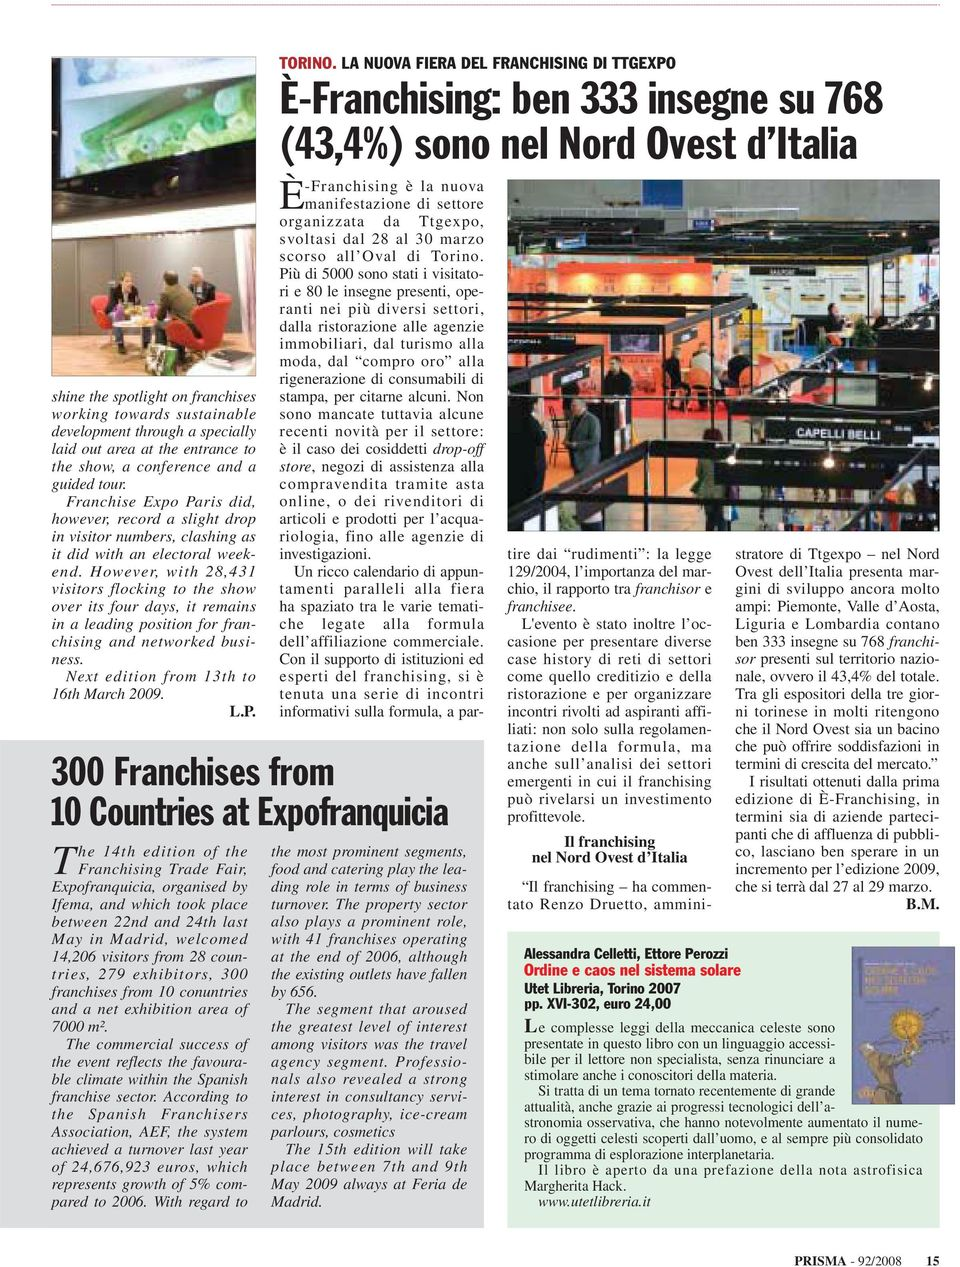 However, with 28,431 visitors flocking to the show over its four days, it remains in a leading position for franchising and networked business. Next edition from 13th to 16th March 2009. L.P.